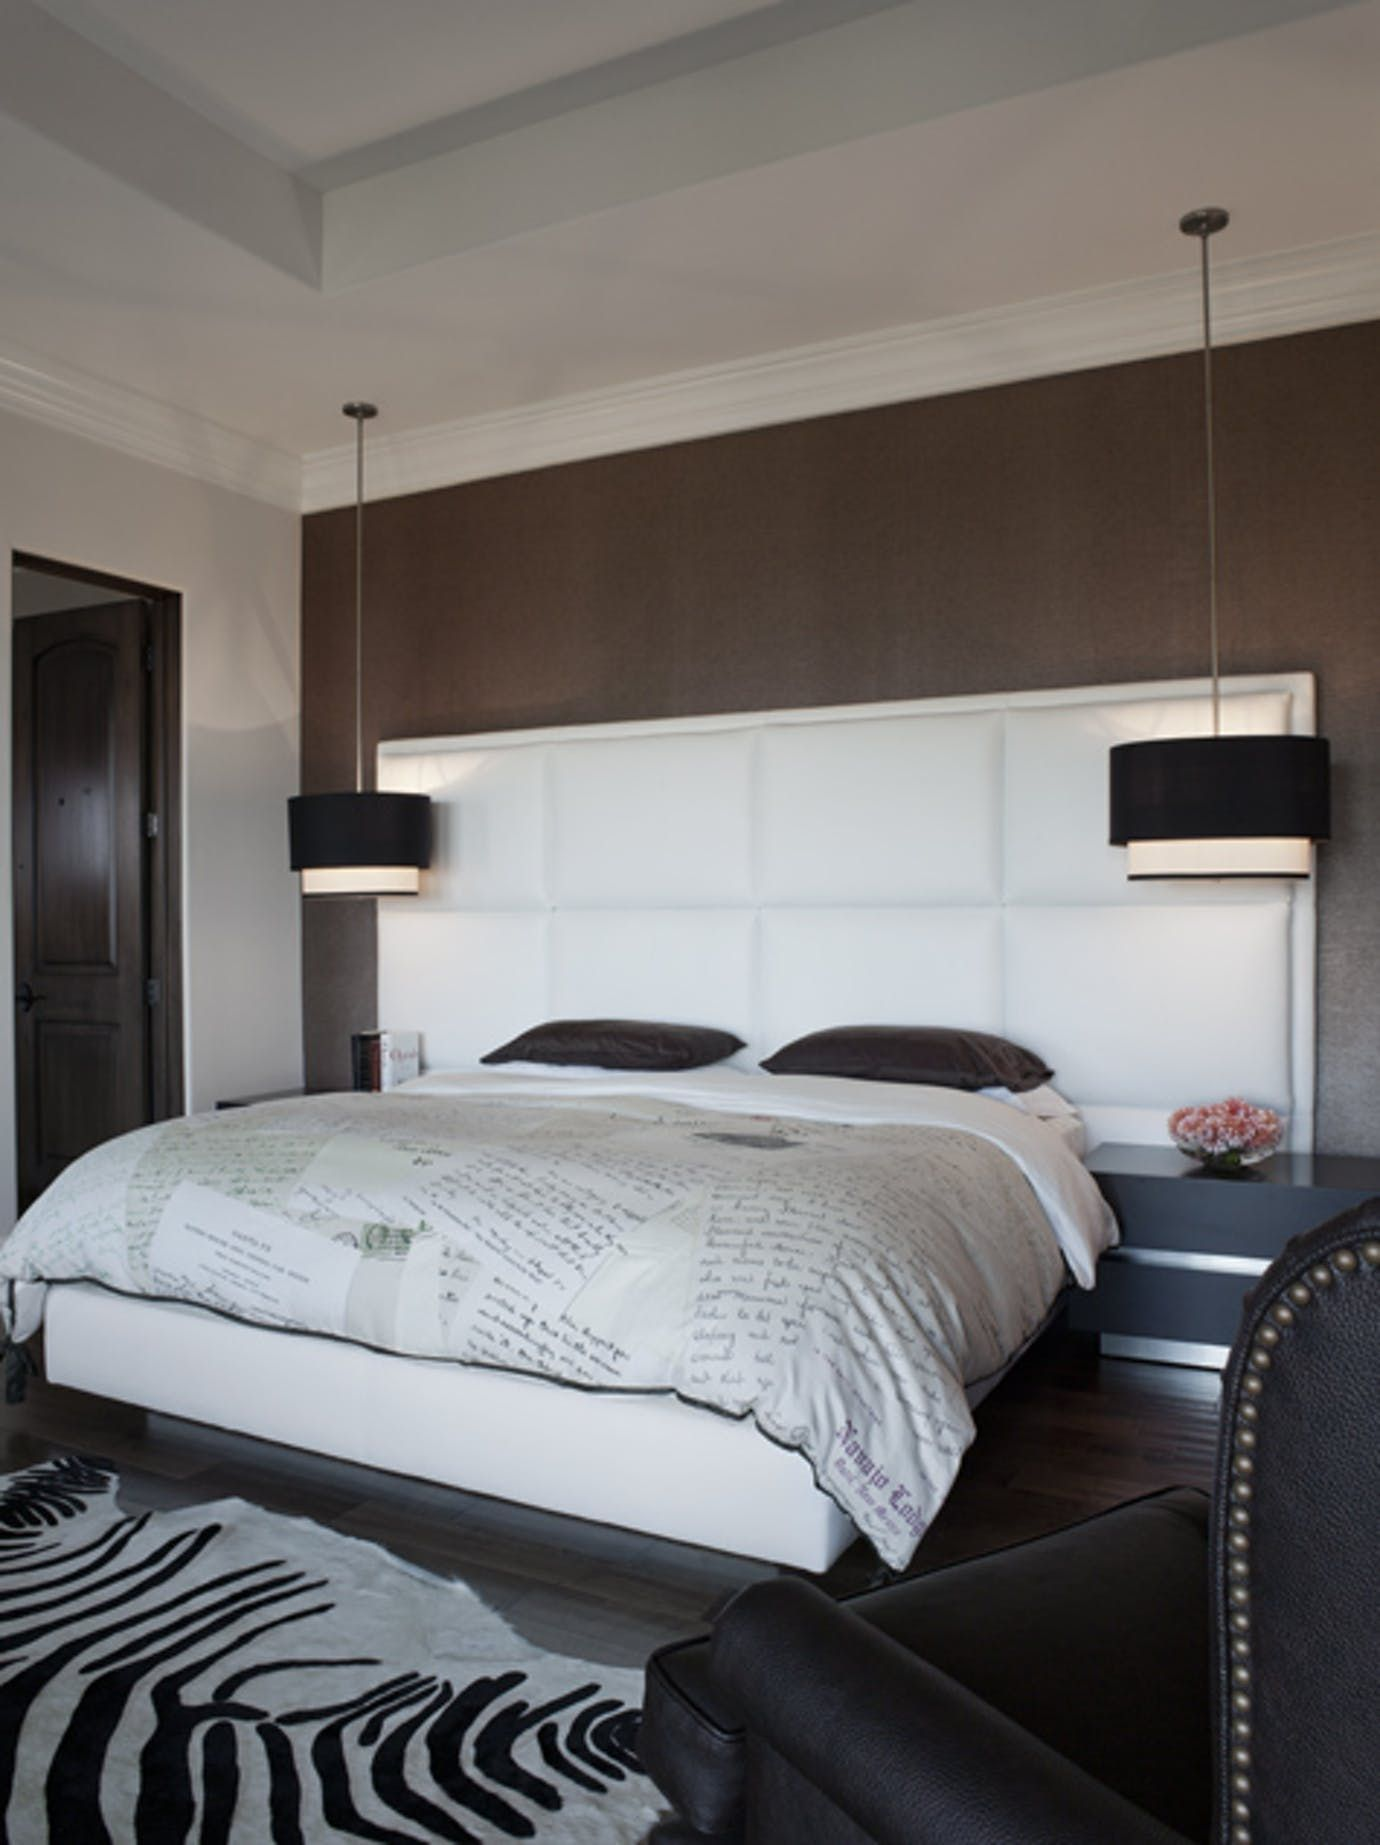 Los Gatos Residence Bedroom Contemporary By Lizette Marie Interior Design